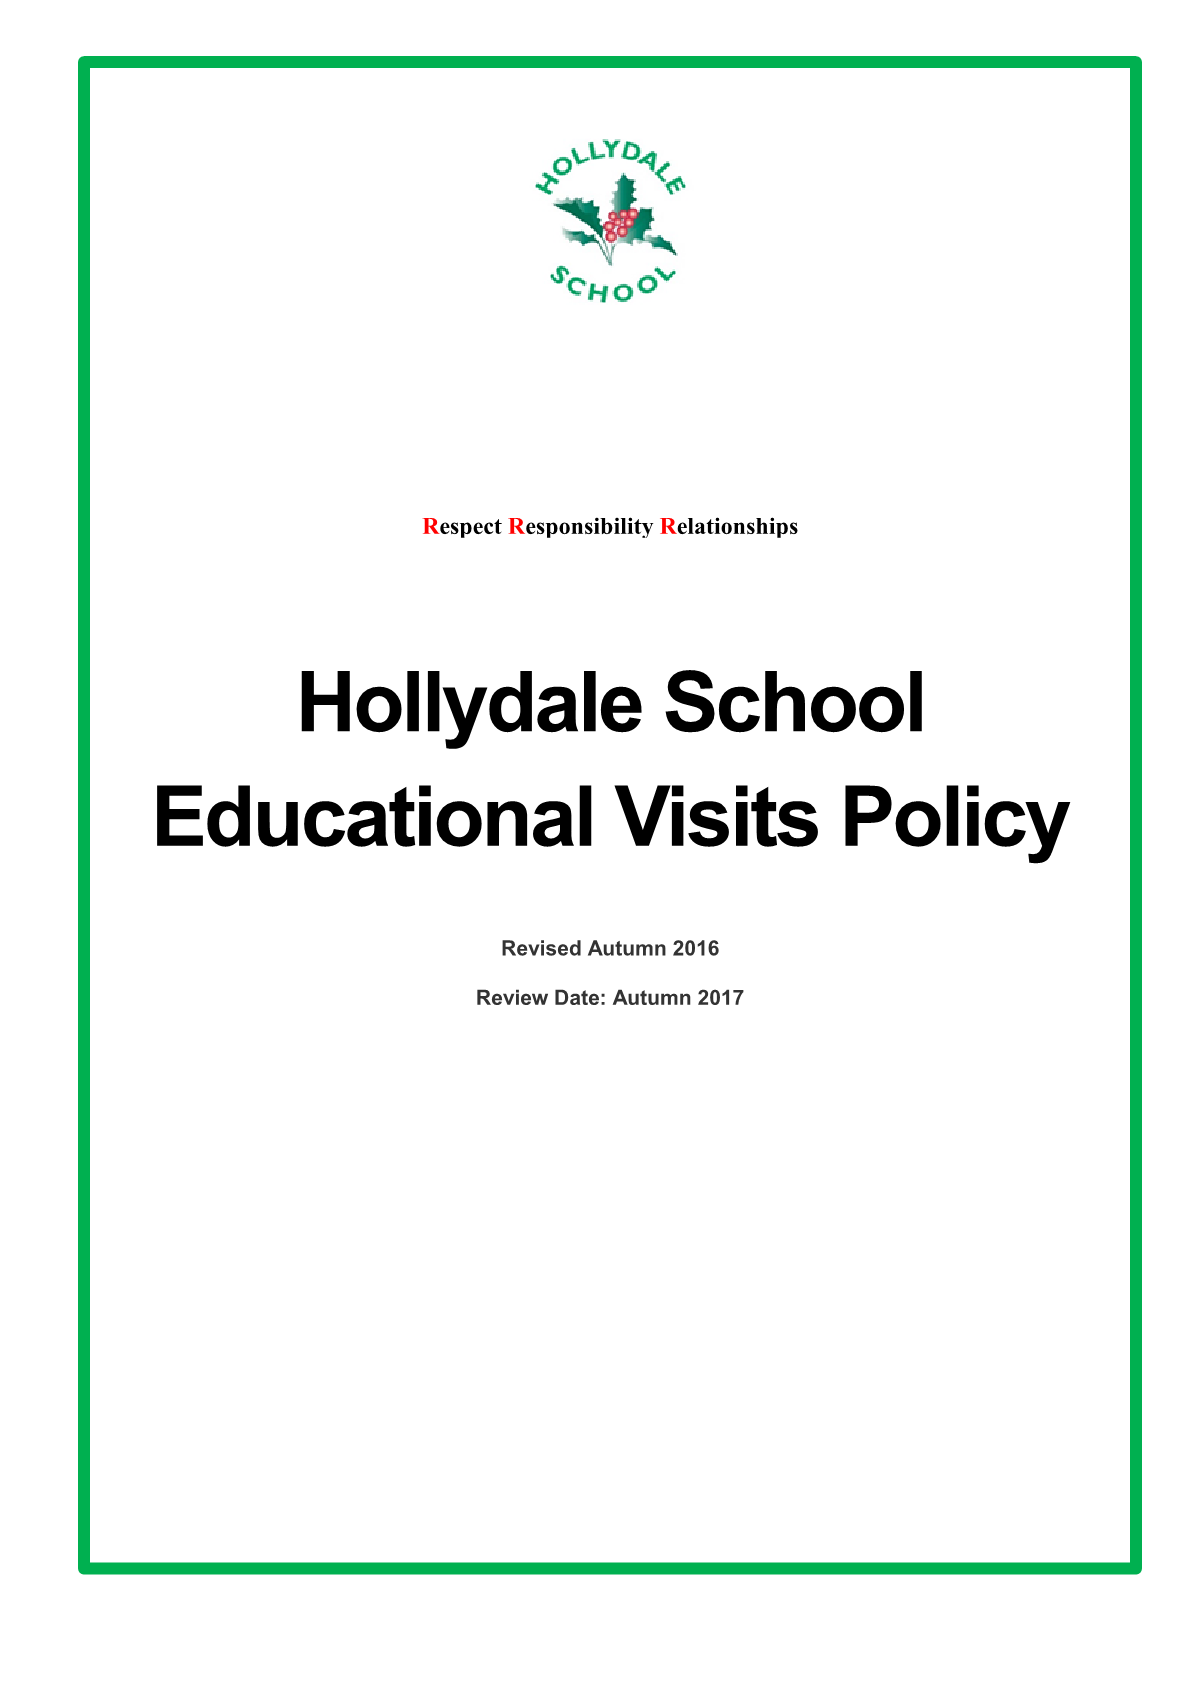 Educational Visits Policy